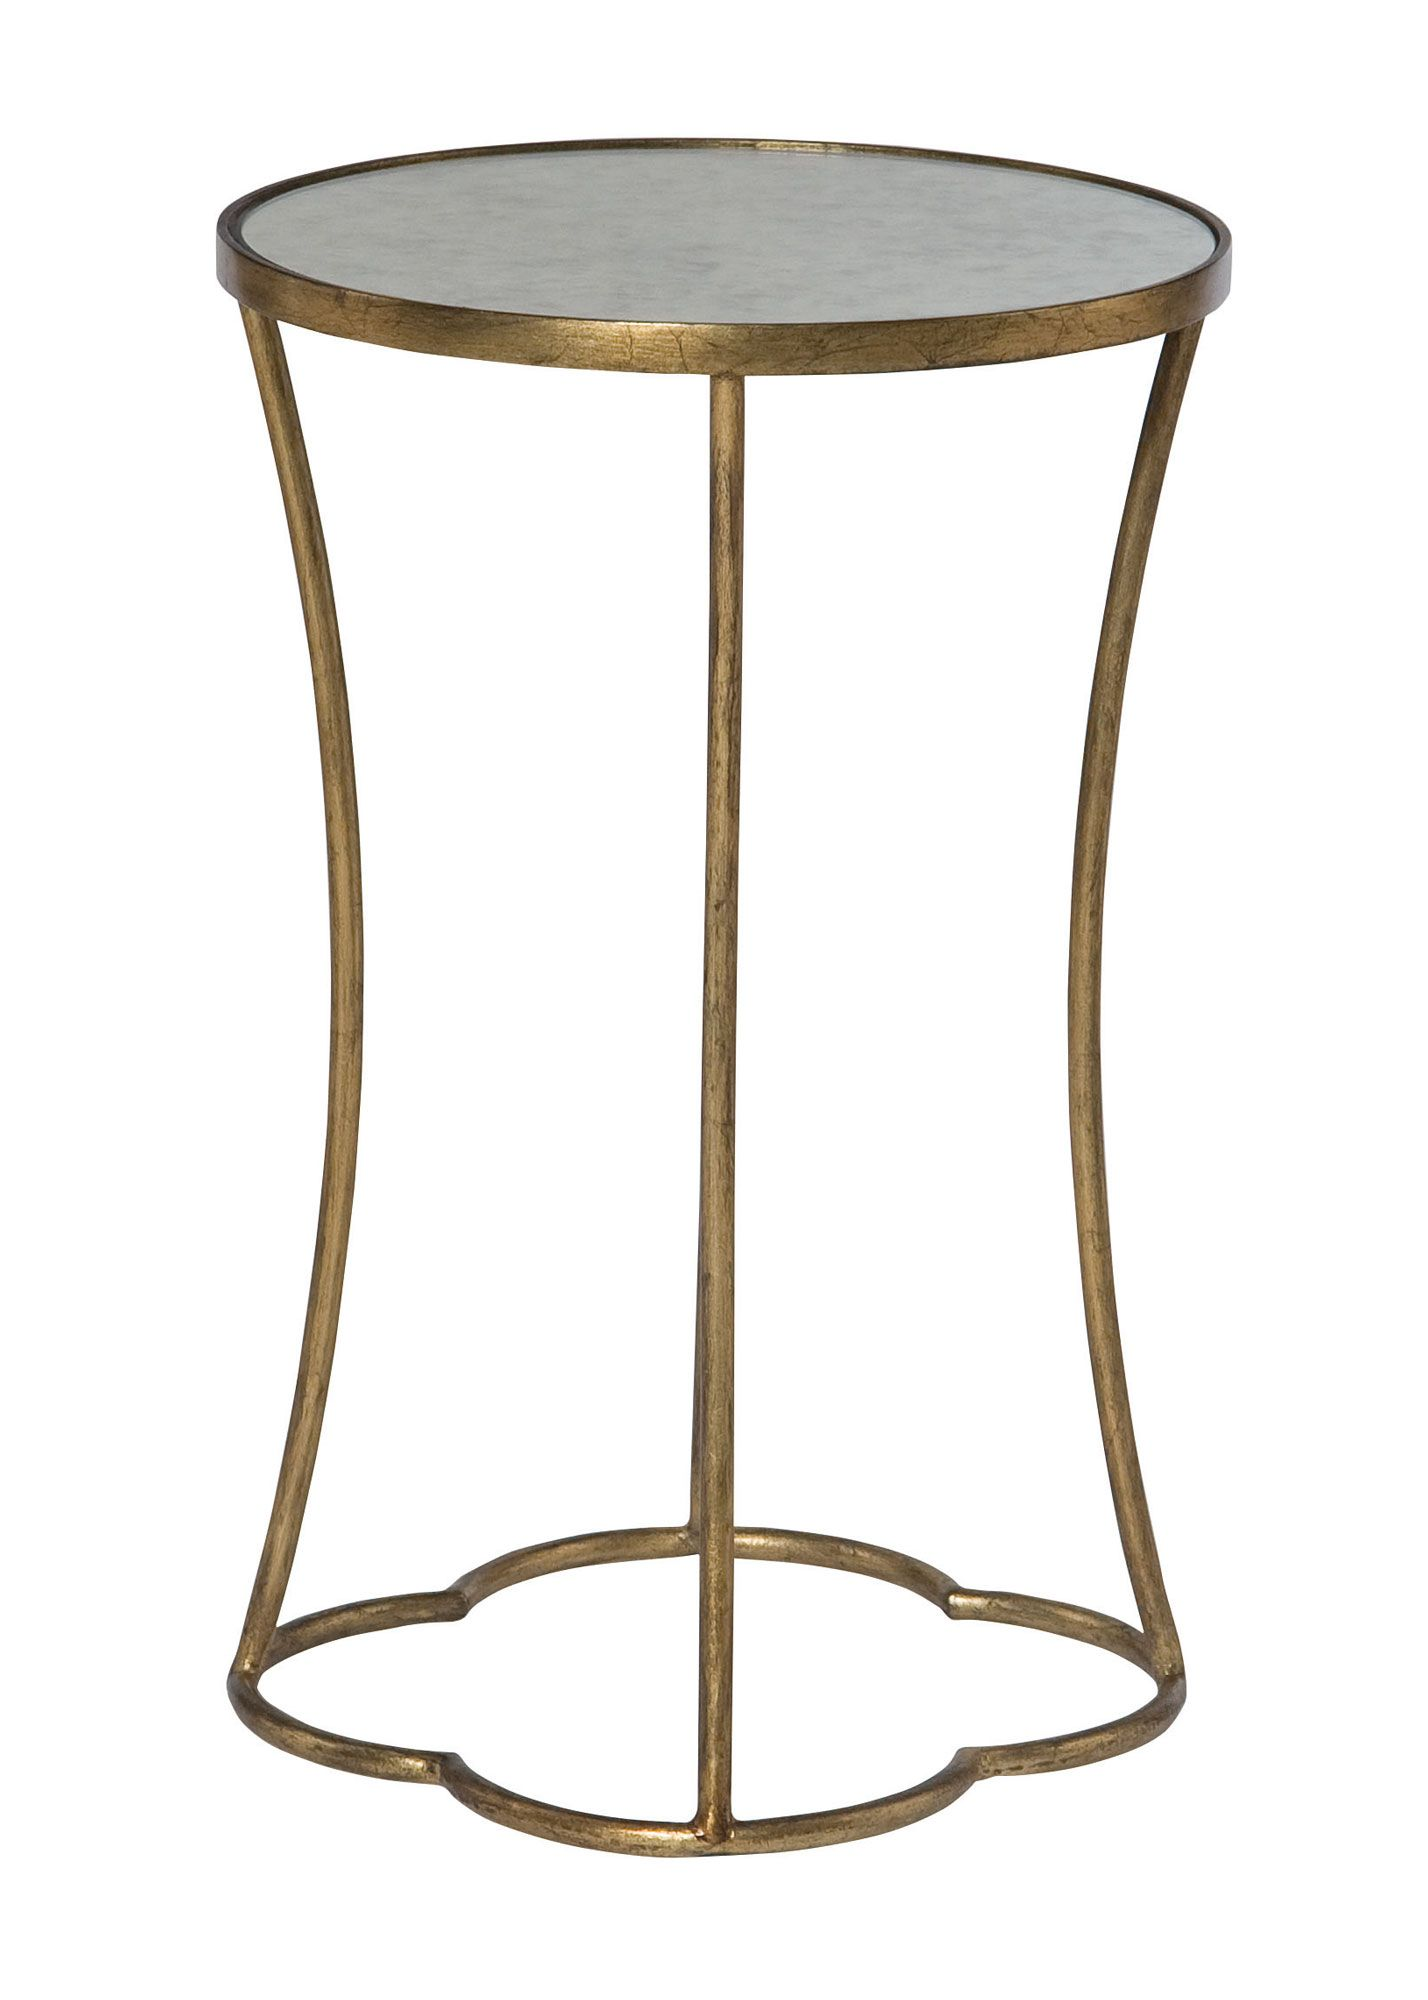 Interiors   Accents Kylie Round Accent Table With Antique Mirrored Top By  Bernhardt At Furniture Barn U0026 Manor House